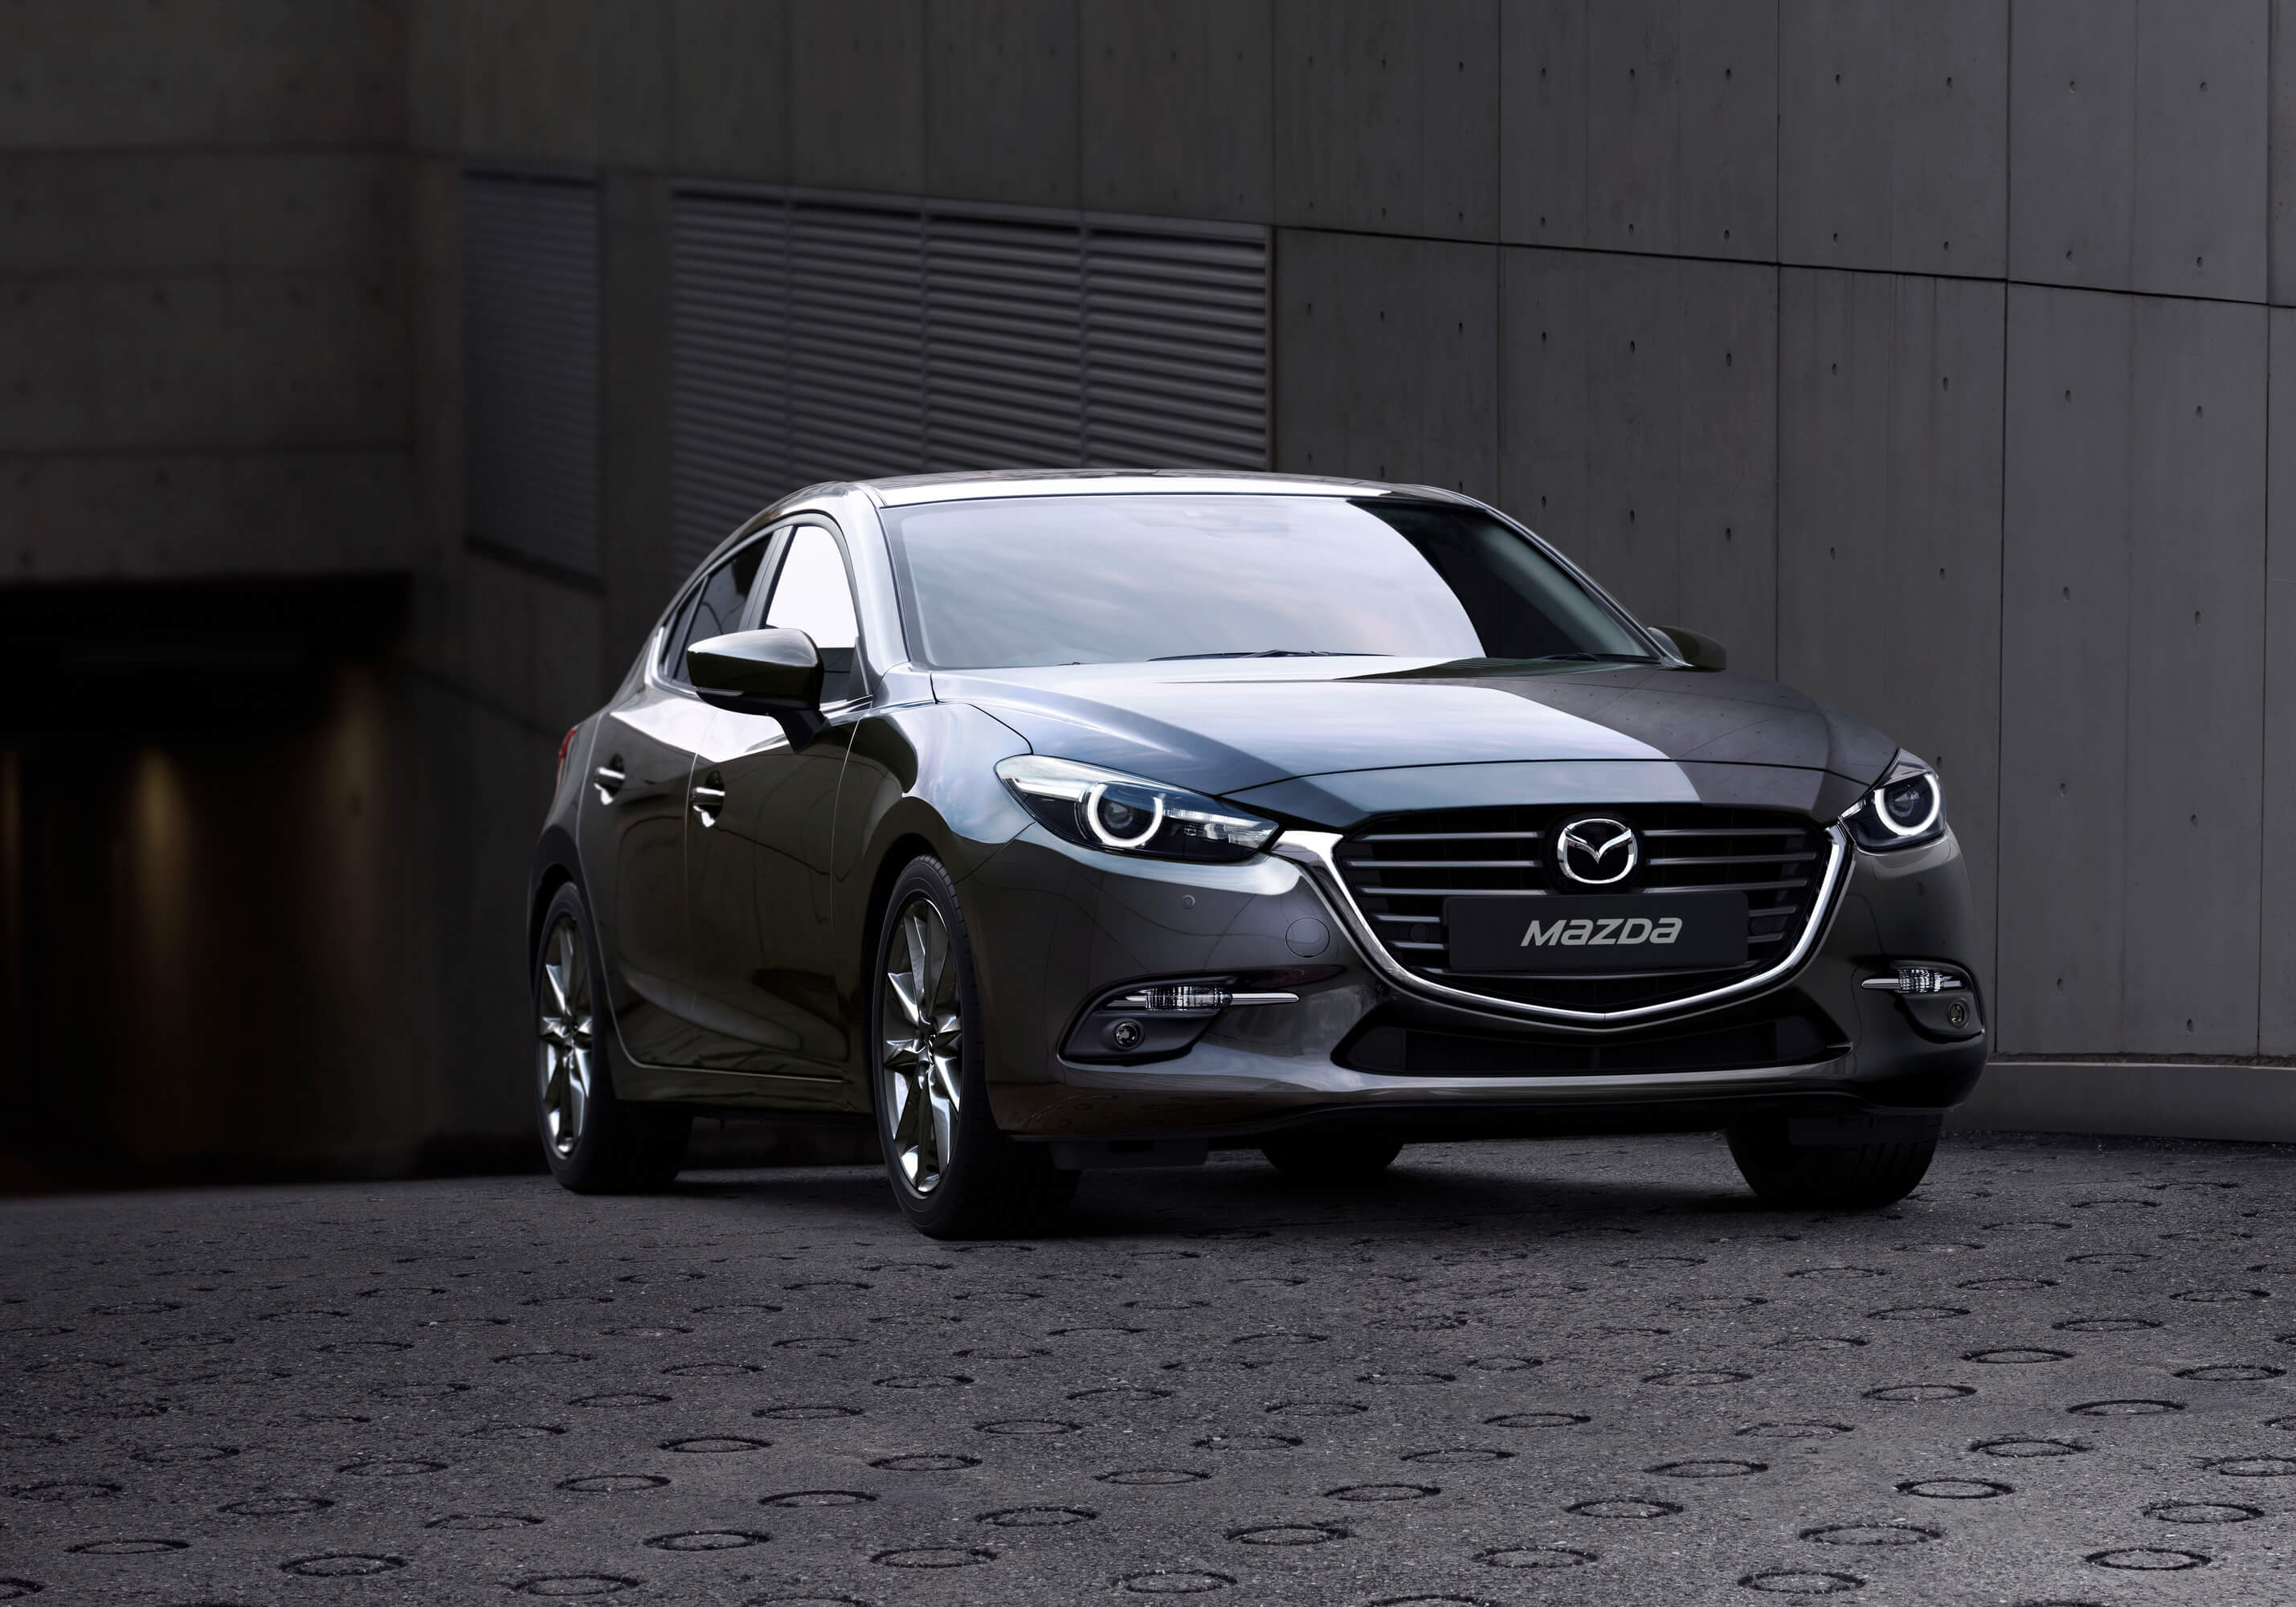 mazda newcx all review top side car reviews cx new gear